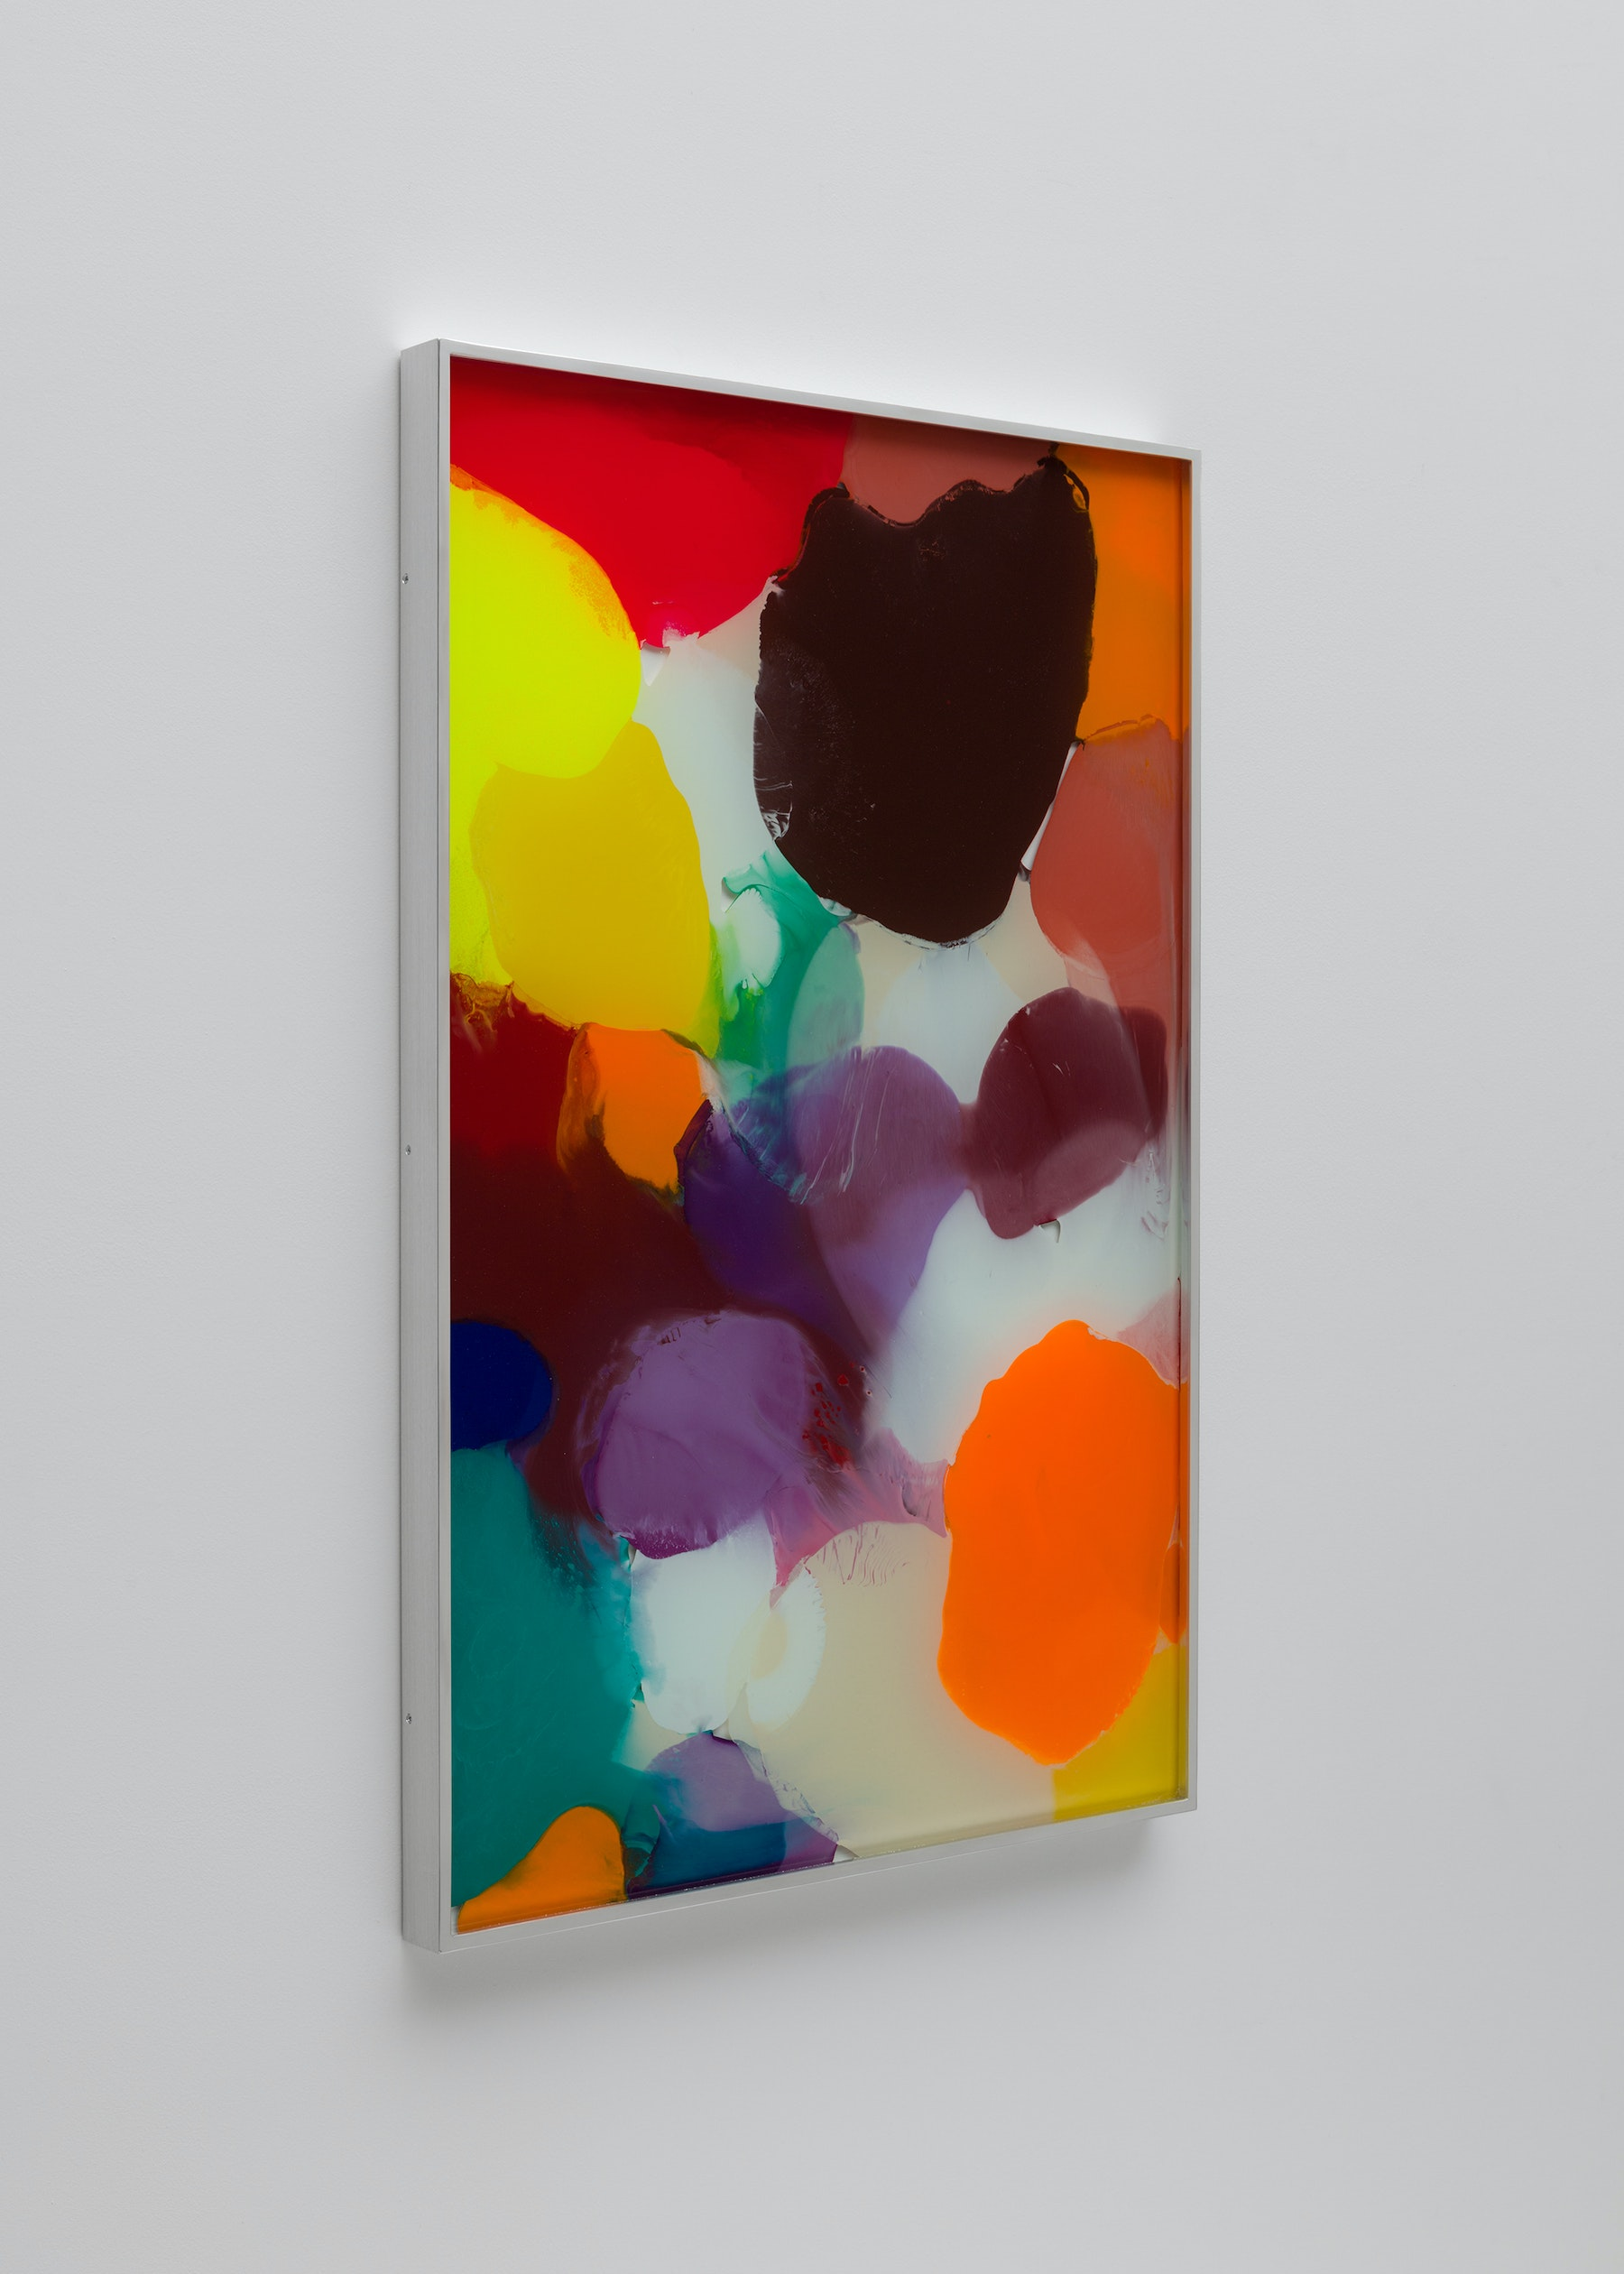 """Yunhee Min """"Up Close in Distance (variation study a4),"""" 2018 Enamel on laminated glass 34.5 x 22.5"""" [HxW] (87.63 x 57.15 cm) Inventory #MIN342 Courtesy of the artist and Vielmetter Los Angeles Photo credit: Brica Wilcox"""